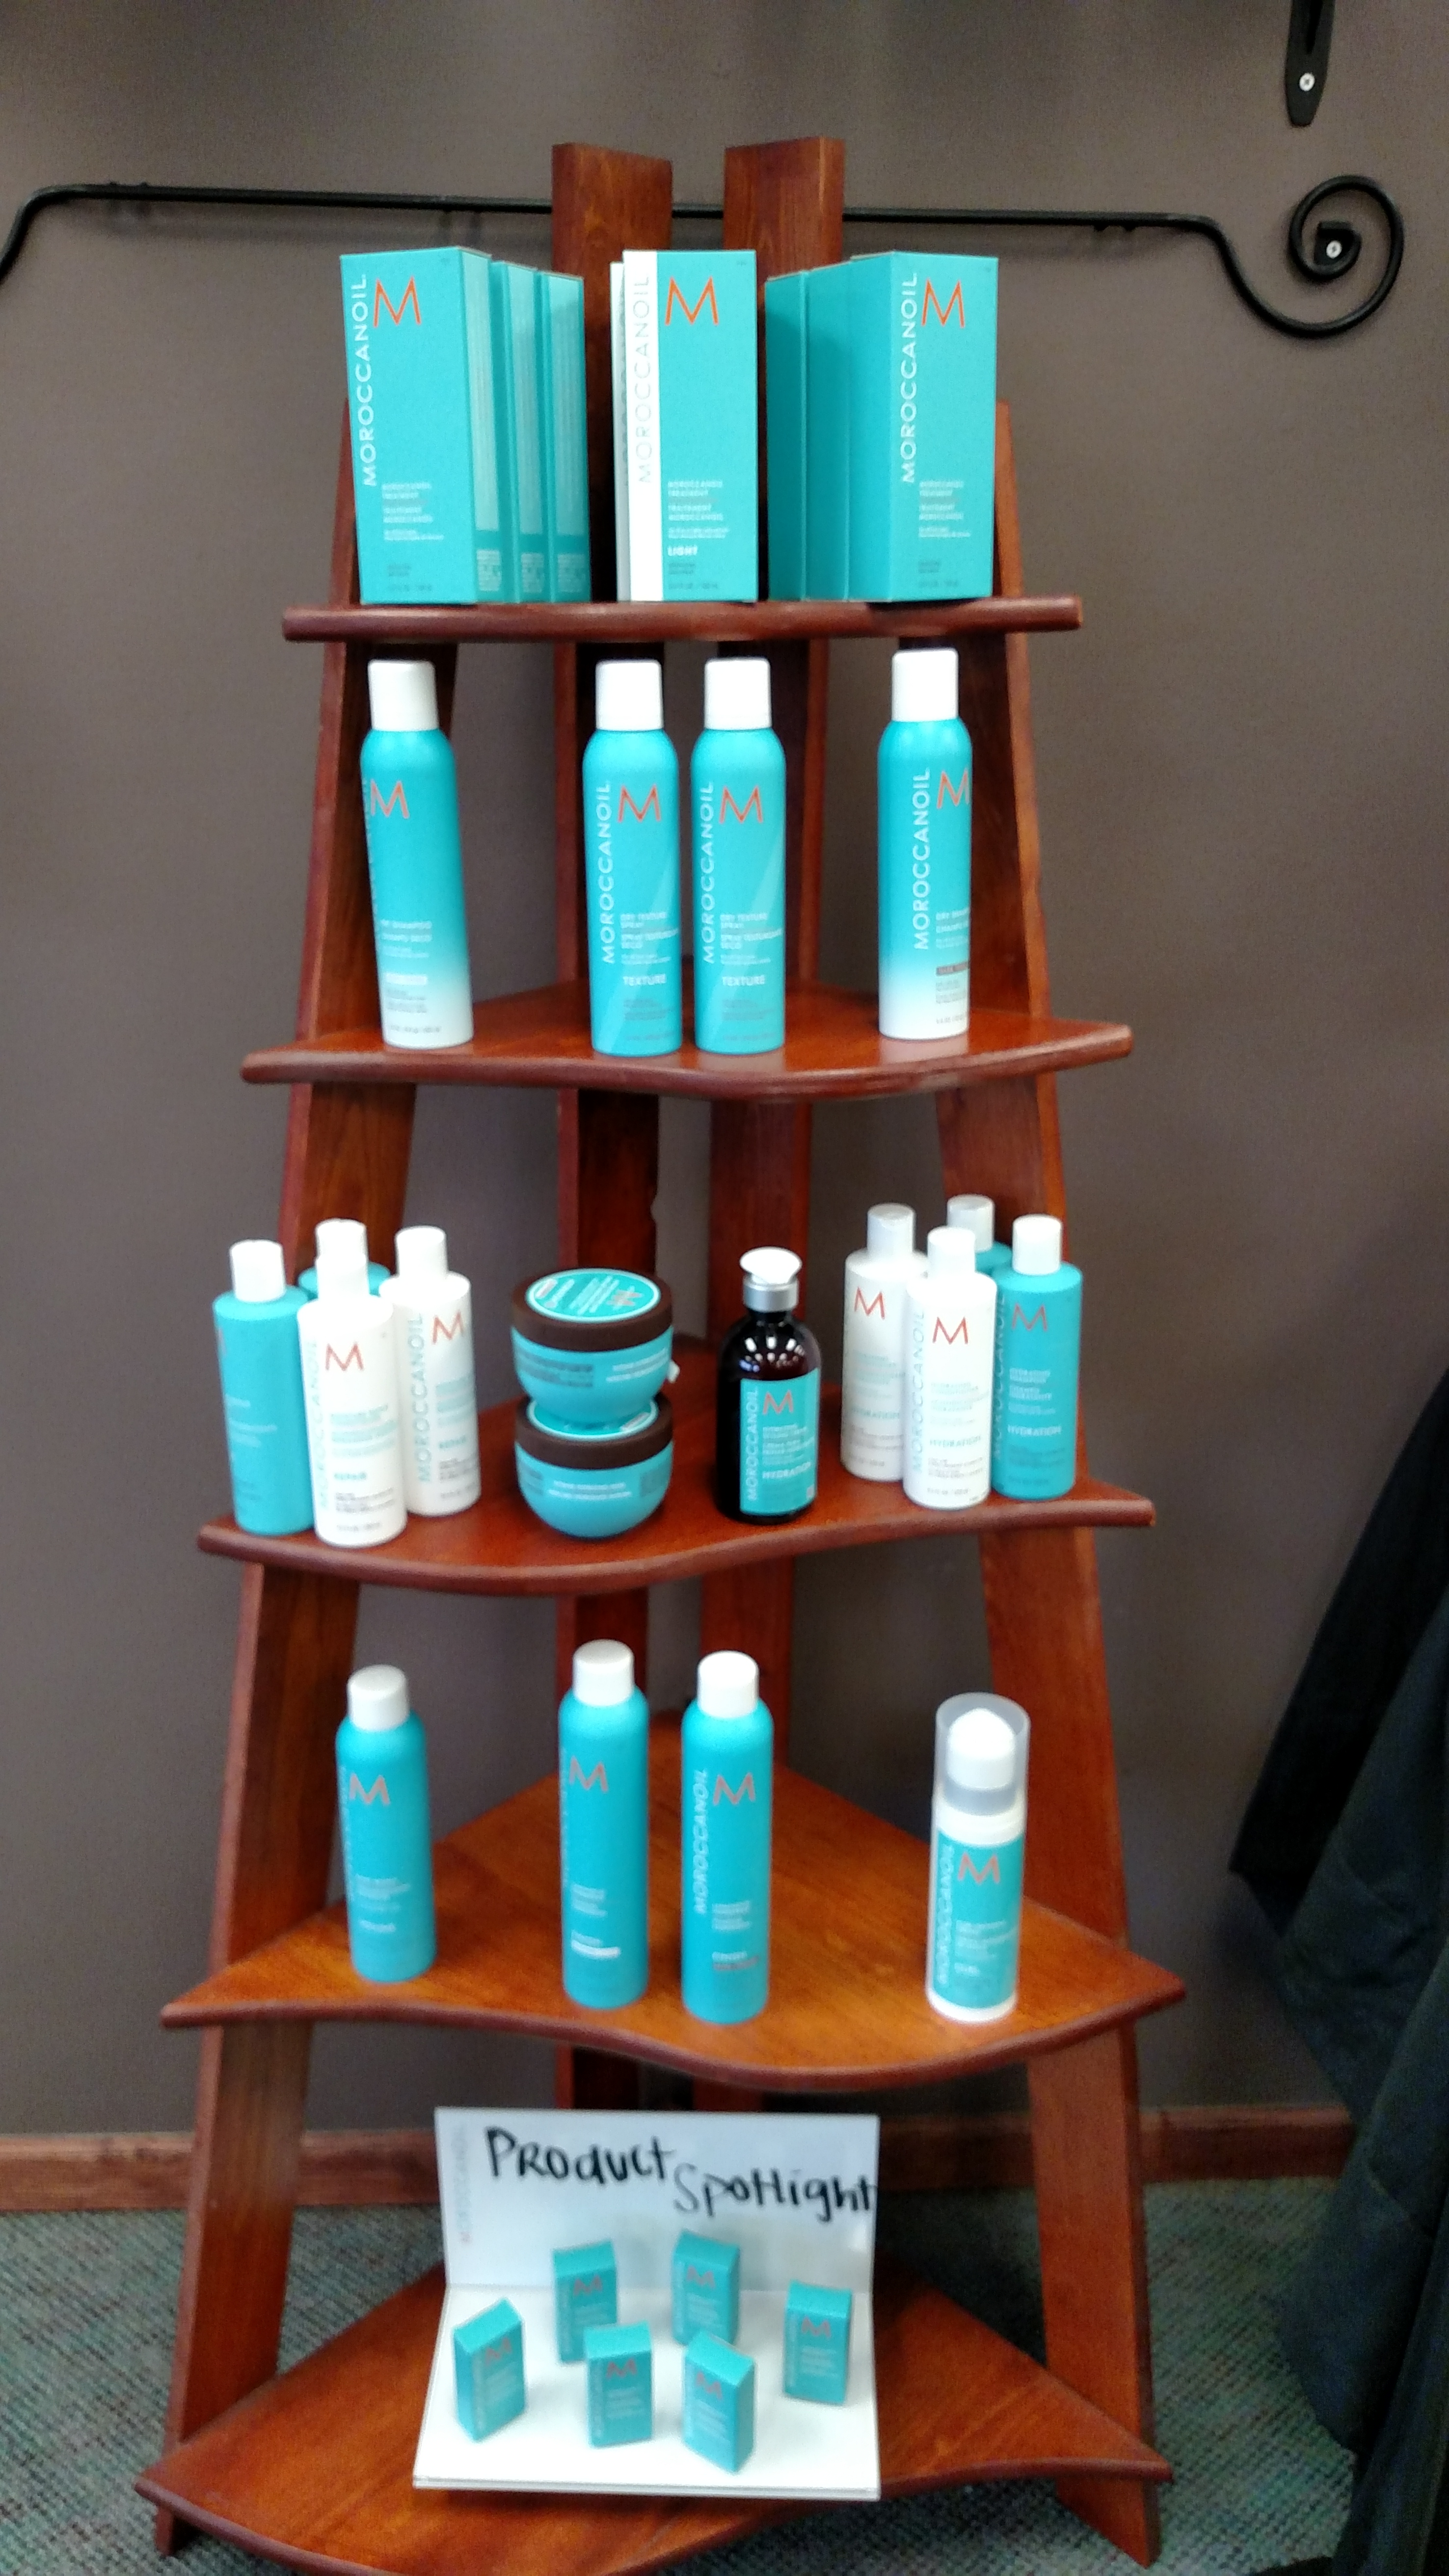 Moroccanoil Display